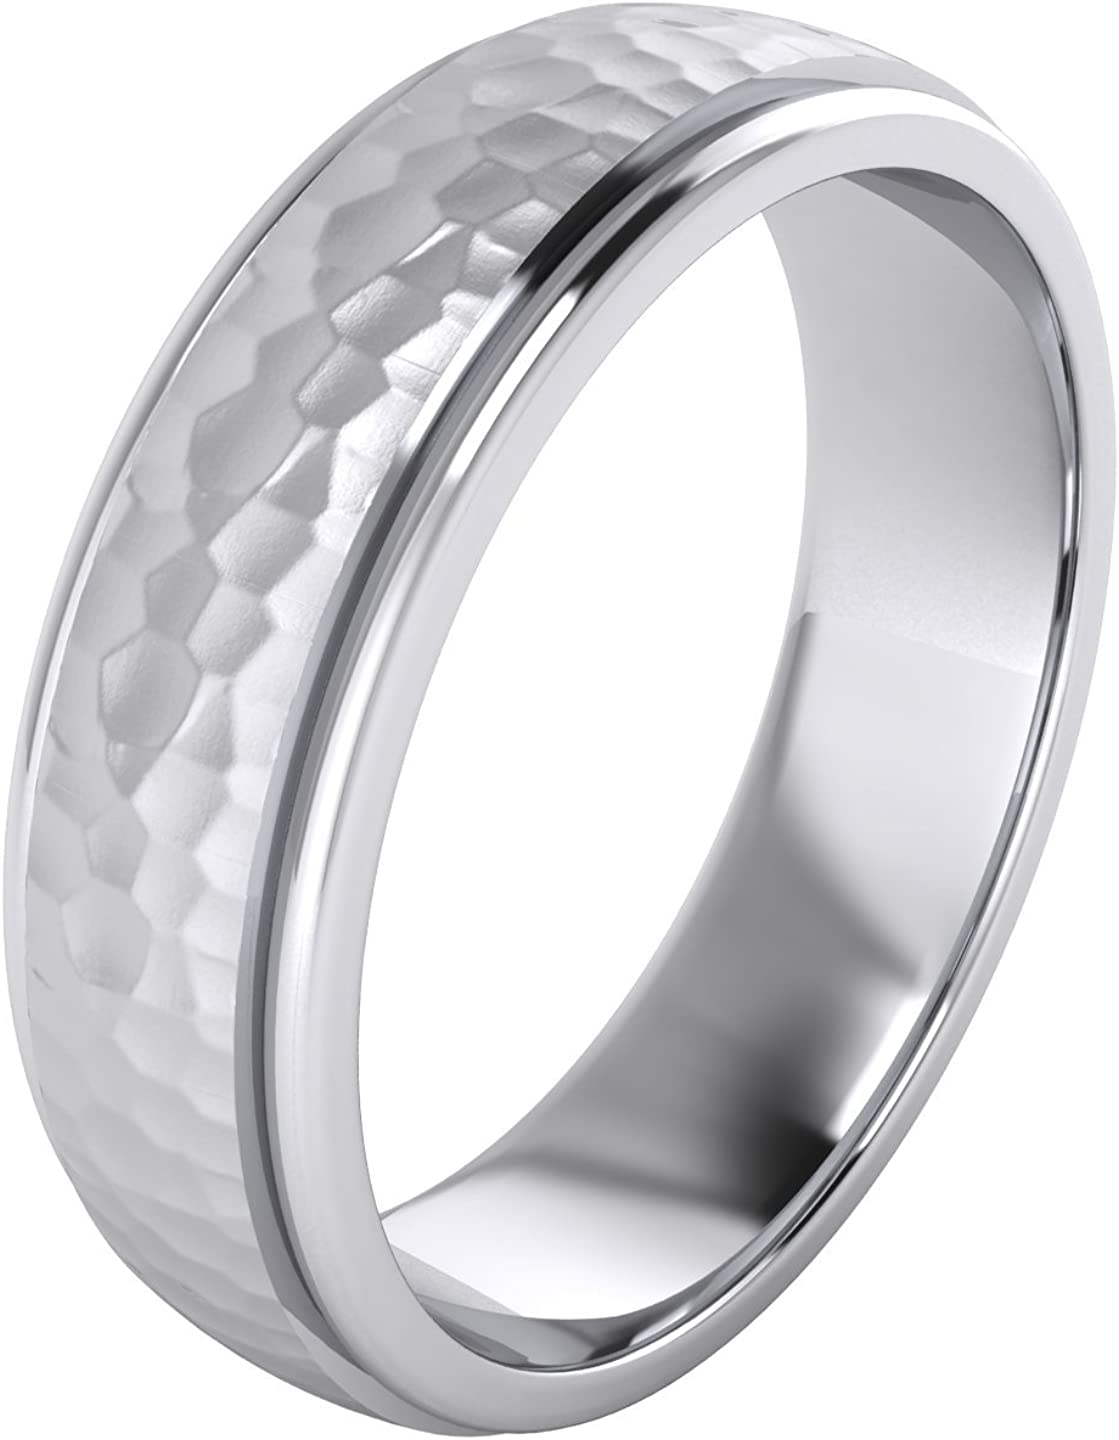 Heavy Solid Sterling Silver 6mm and 8mm Hammered Unisex Wedding Band Comfort Fit Ring Raised Center Polished Sides